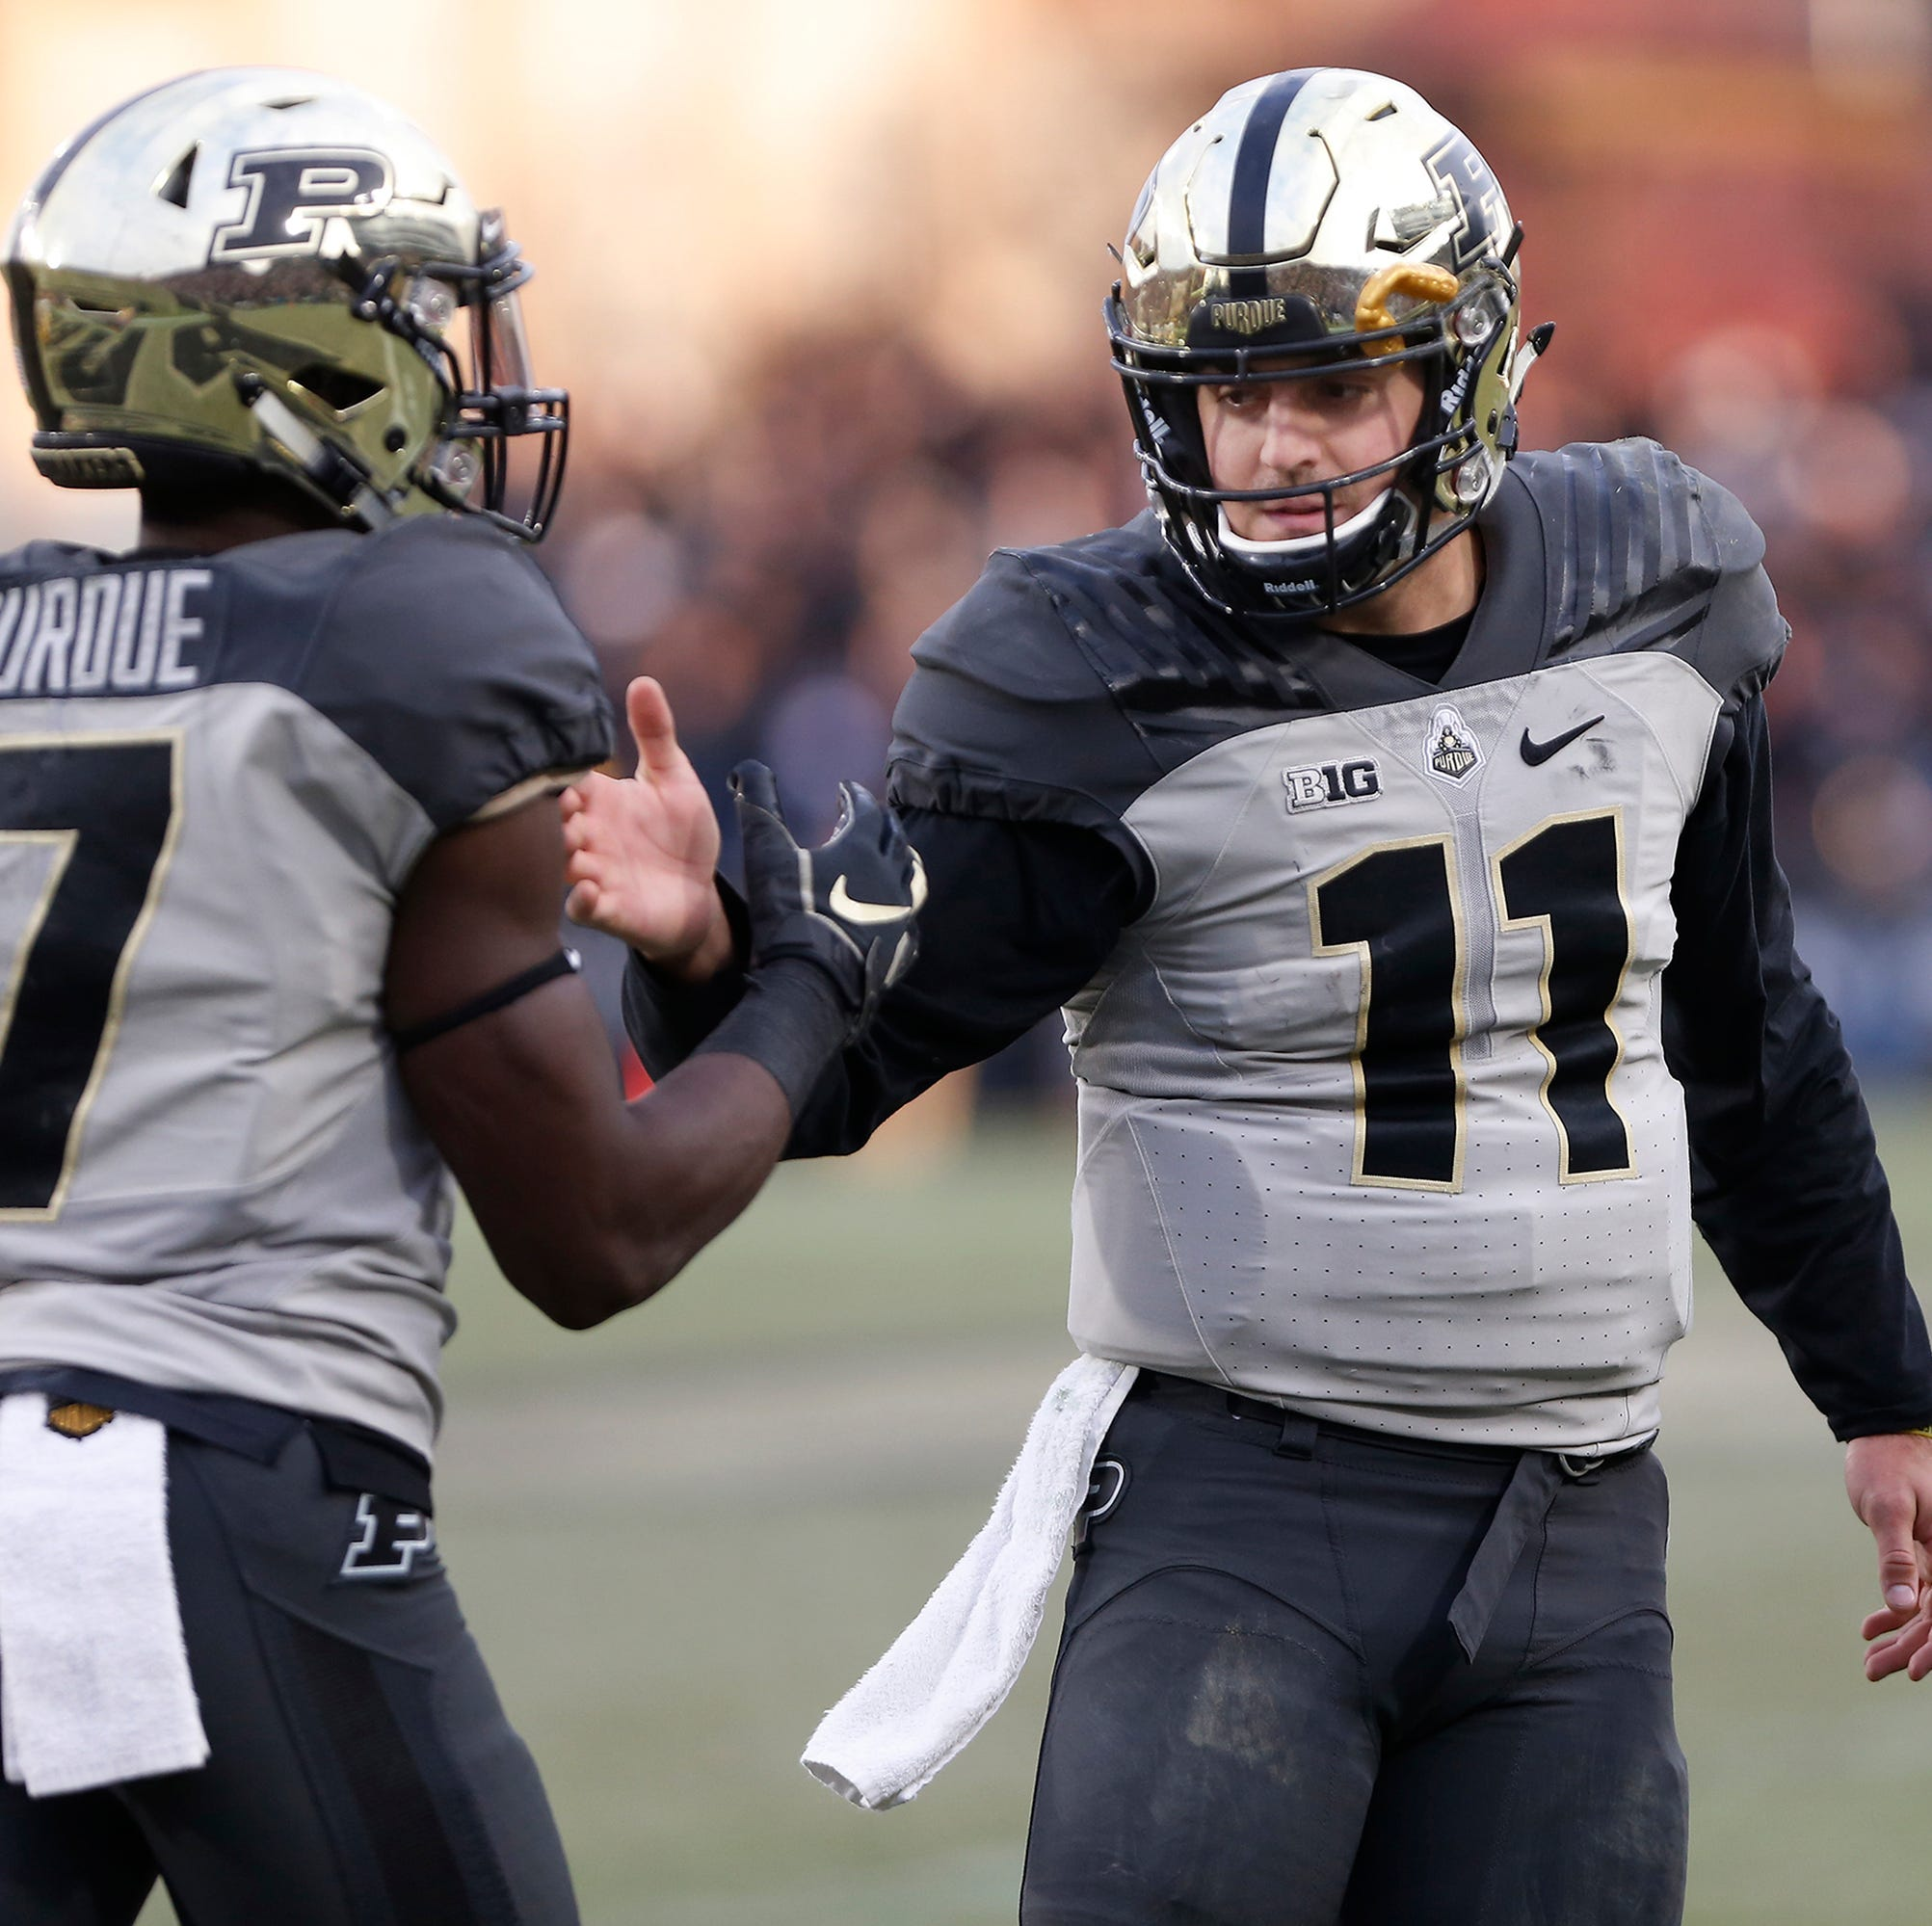 Blough, Purdue football embrace pressure of Saturday's game against Indiana